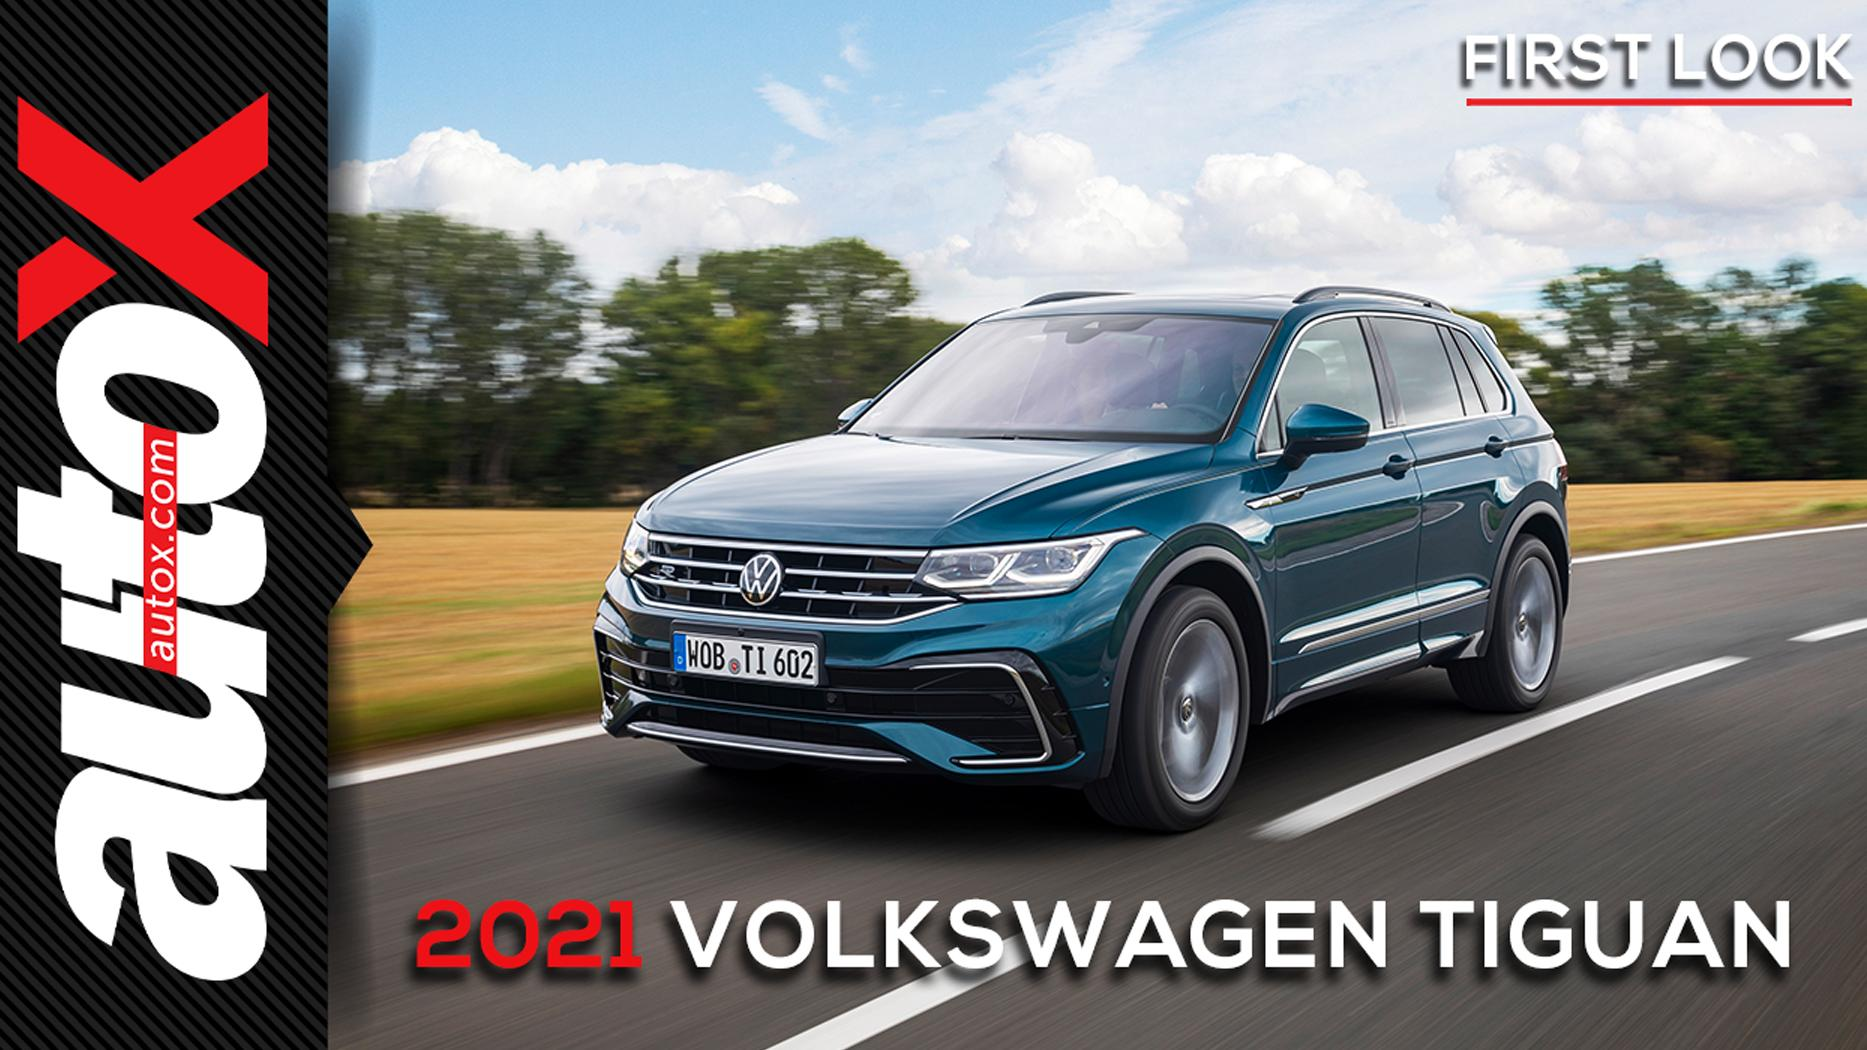 2021 VW Tiguan | First Look at VW's mid-sized SUV | autoX